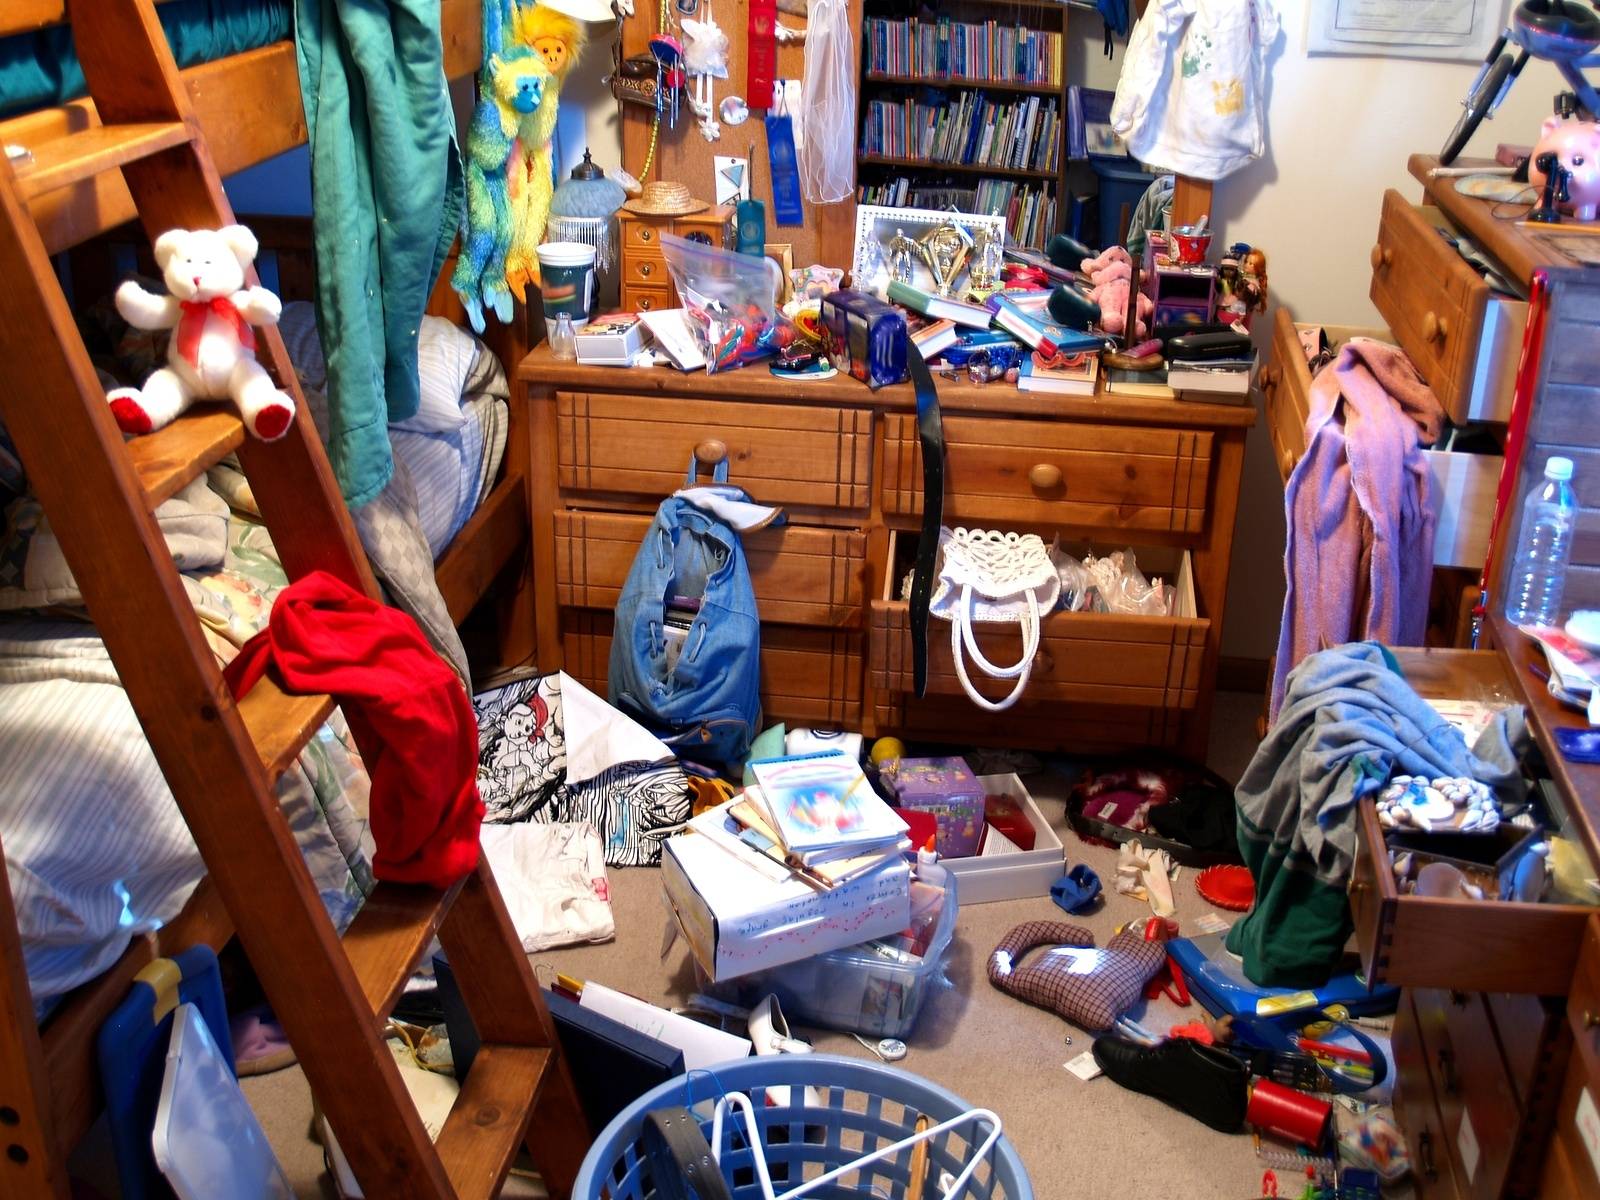 bigstock-Messy-Bedroom-755259.jpg